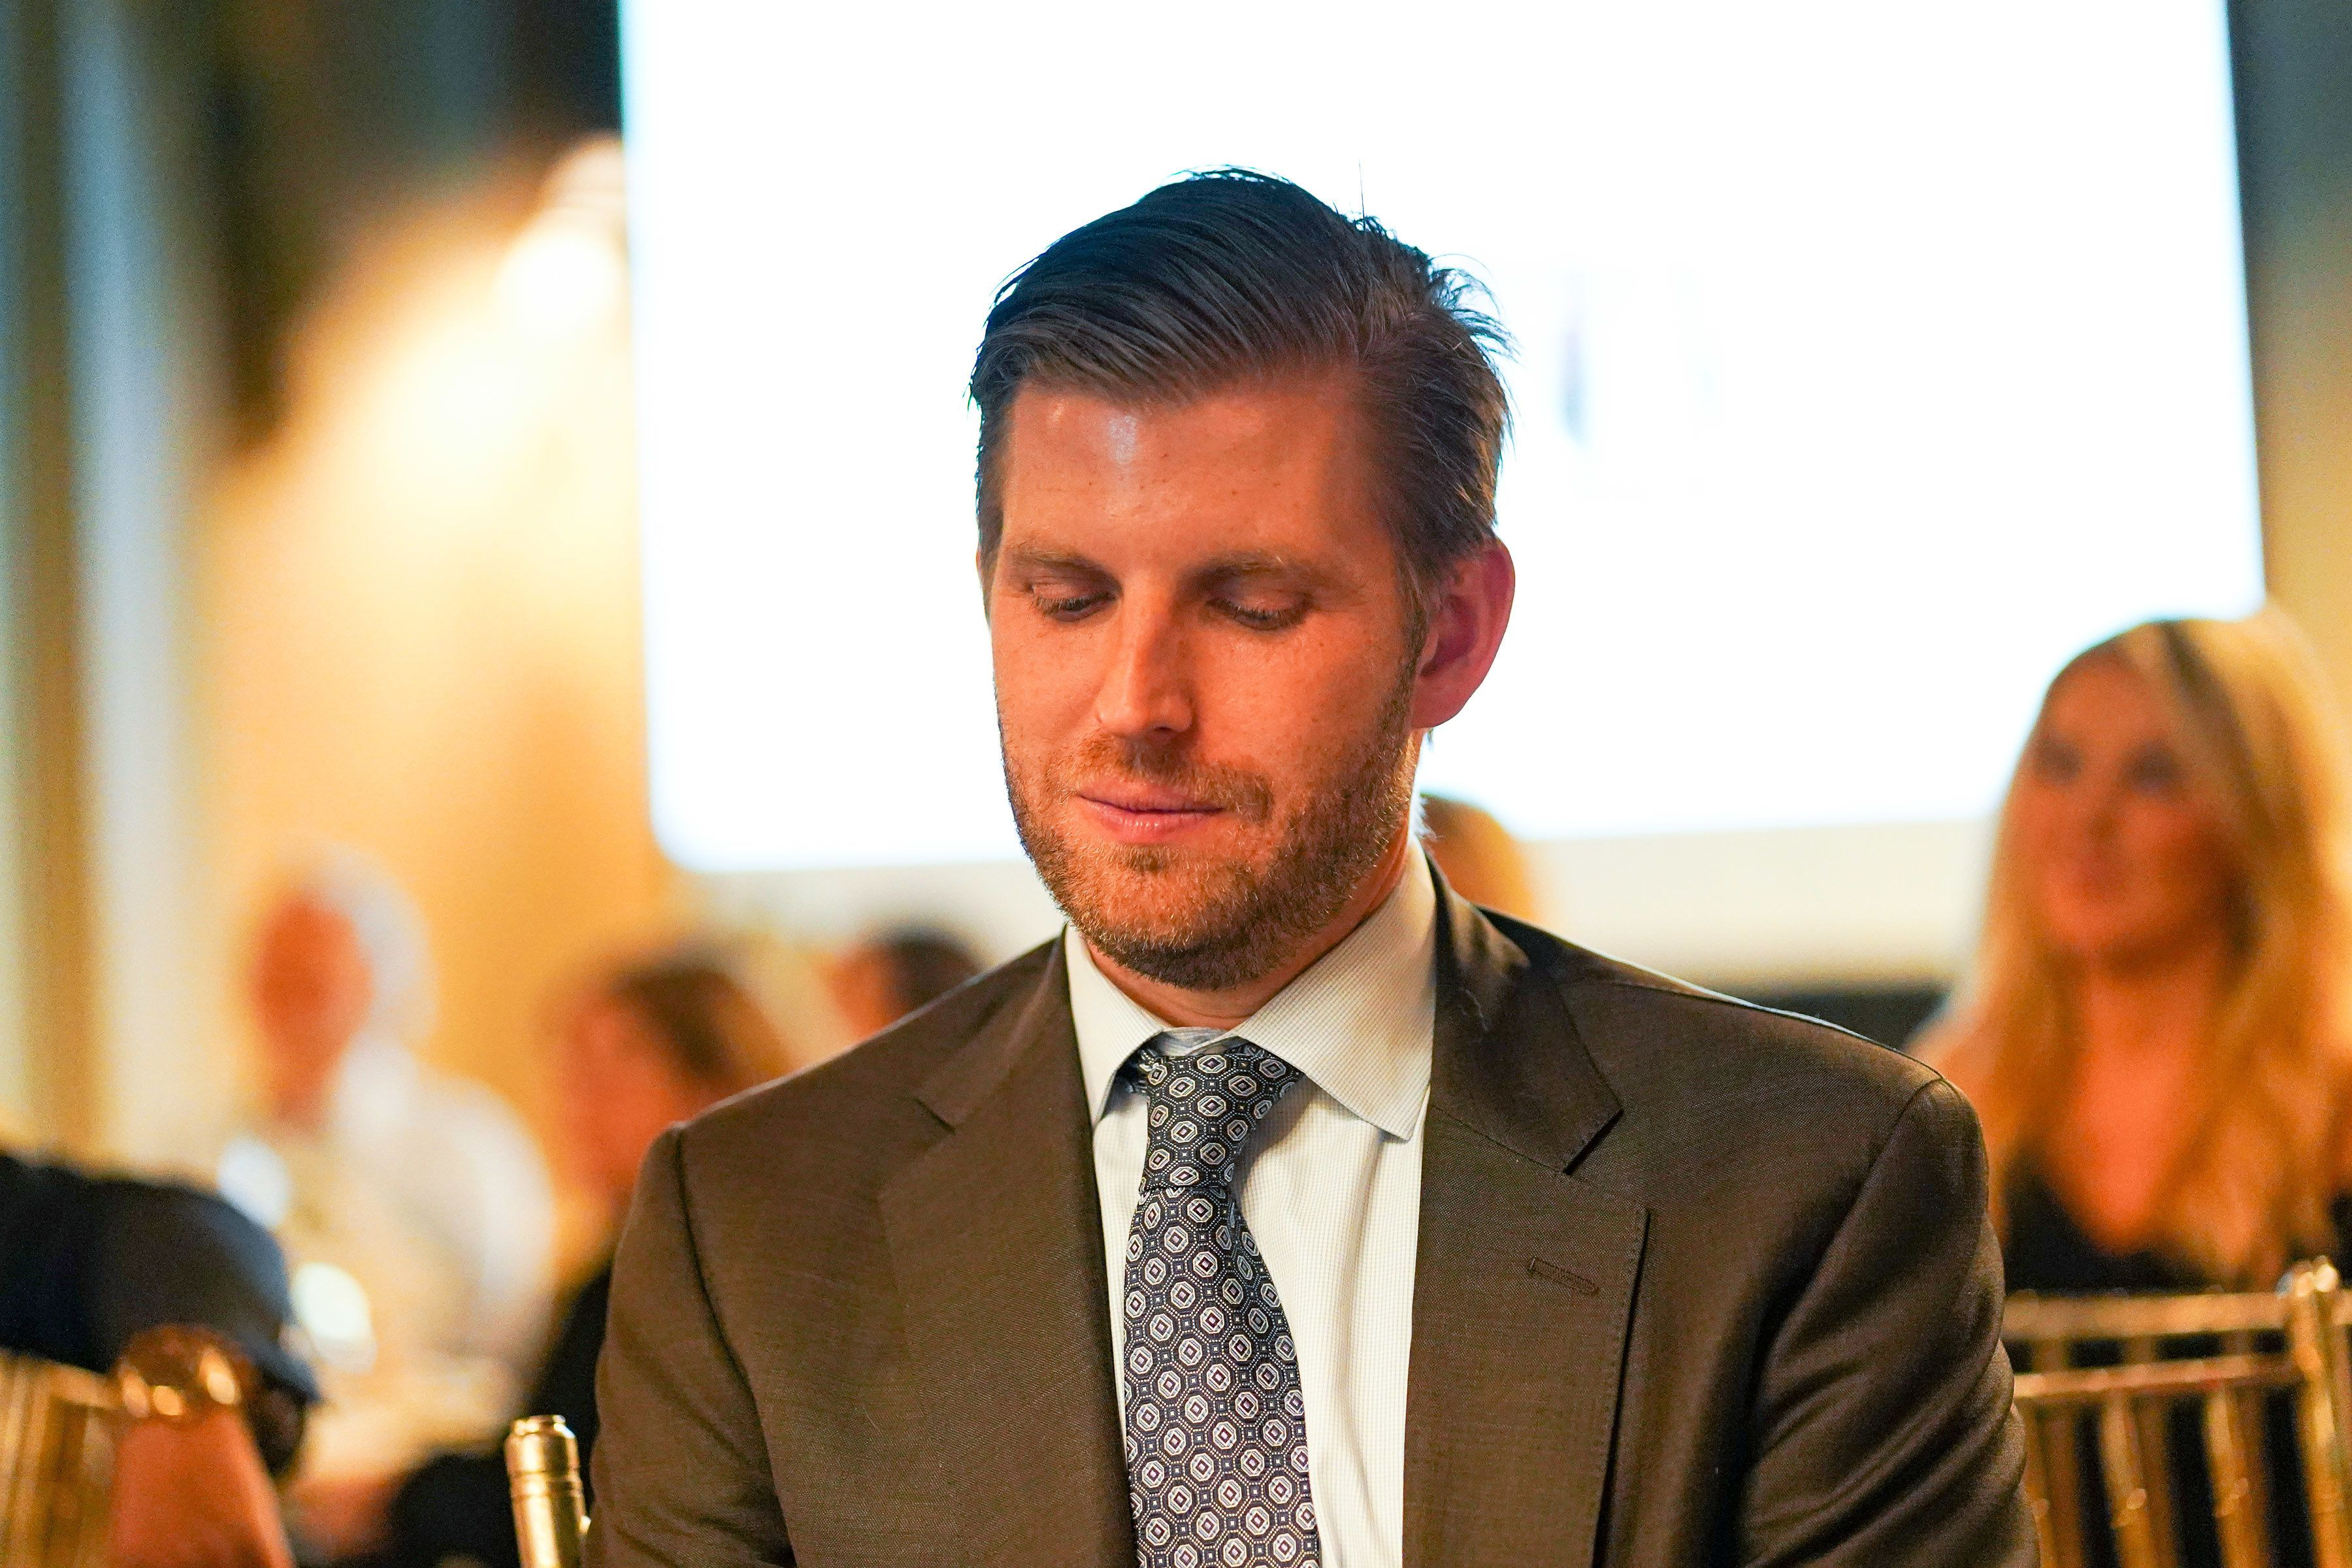 NEW YORK, NY - OCTOBER 09:  Eric Trump attends Rescue Dogs Rock NYC Inaugural Benefit 2018 at The Harmonie Club on October 9, 2018 in New York City.  (Photo by Sean Zanni/Patrick McMullan via Getty Images)